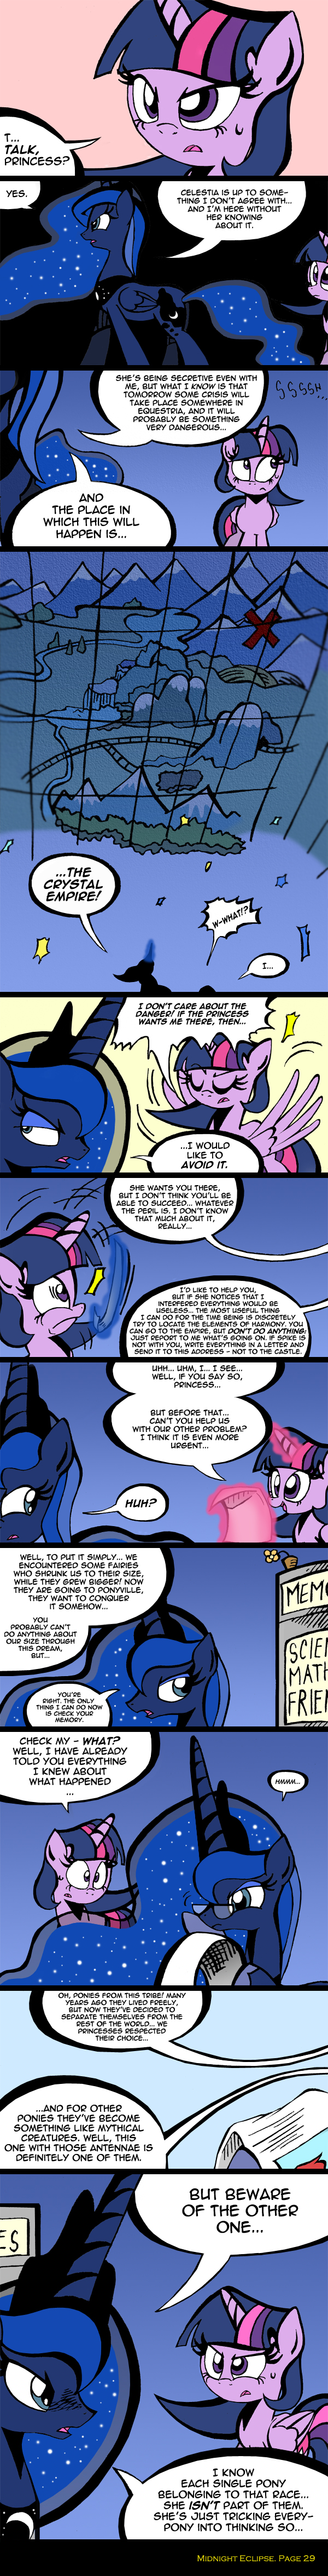 Midnight Eclipse - Page 29 by labba94